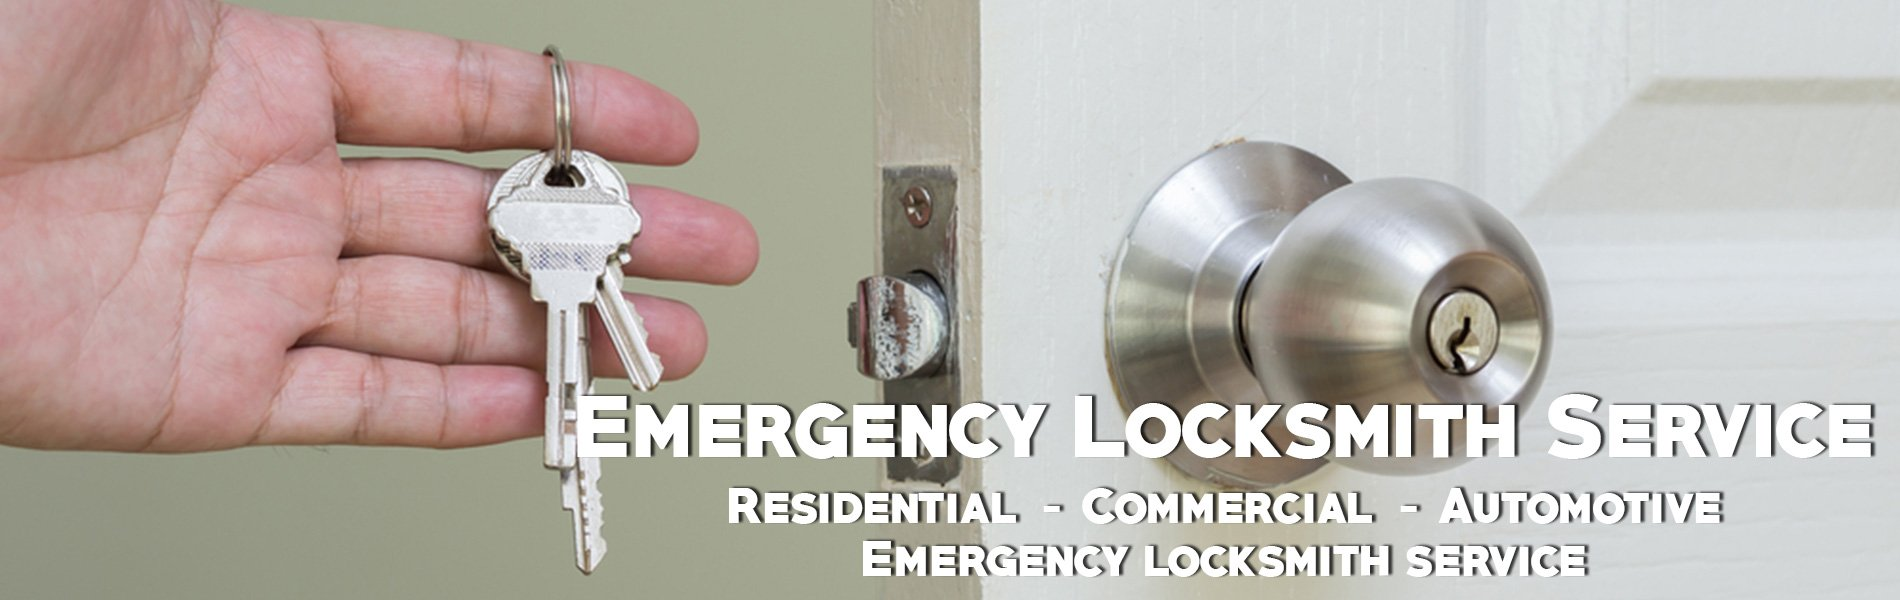 Elite Locksmith Services Cherry Hill, NJ 856-437-3693